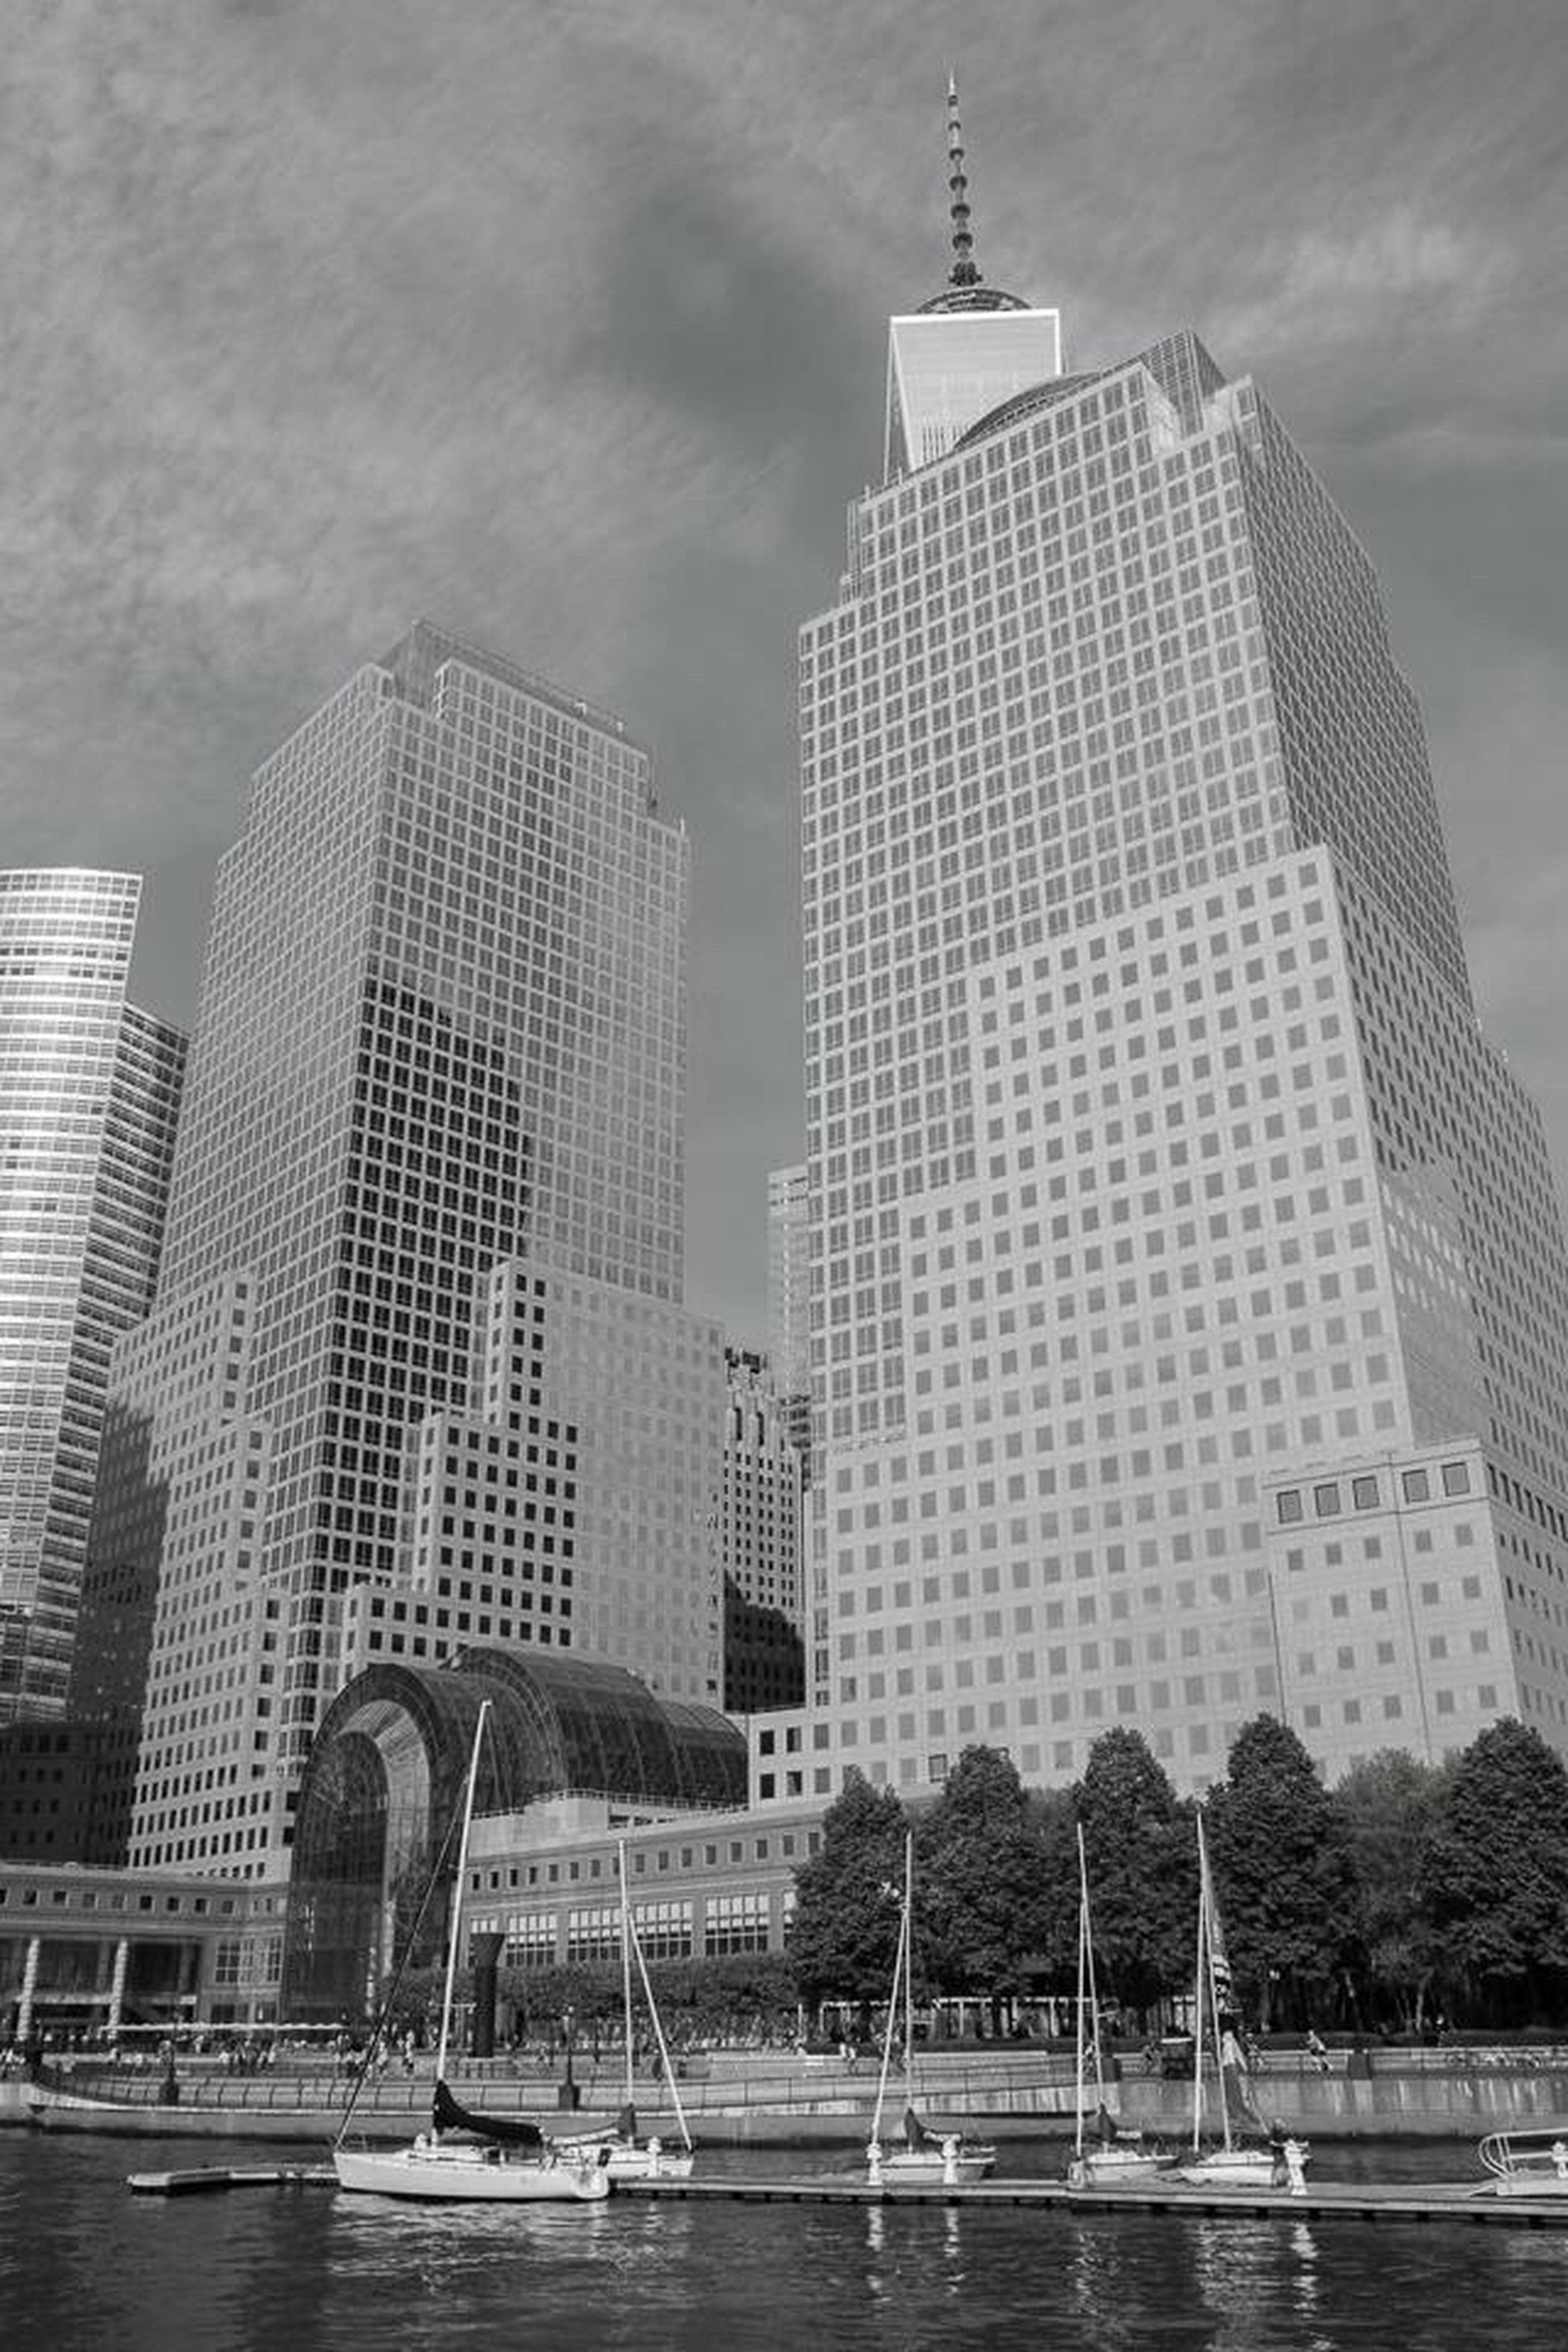 architecture, building exterior, built structure, skyscraper, water, sky, cloud - sky, modern, development, travel destinations, city, day, outdoors, tall, no people, urban skyline, tree